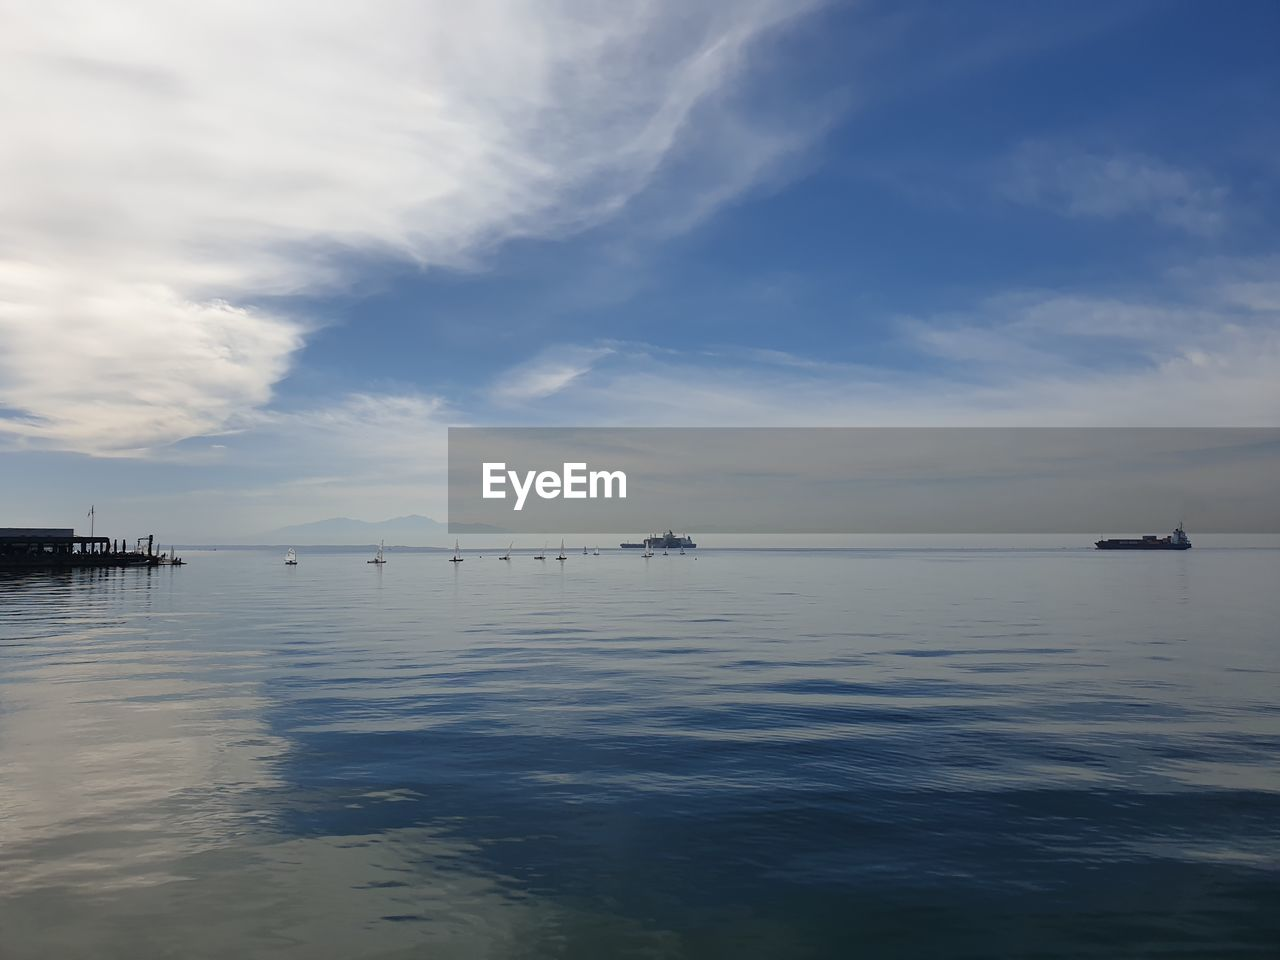 VIEW OF SAILBOATS IN SEA AGAINST SKY